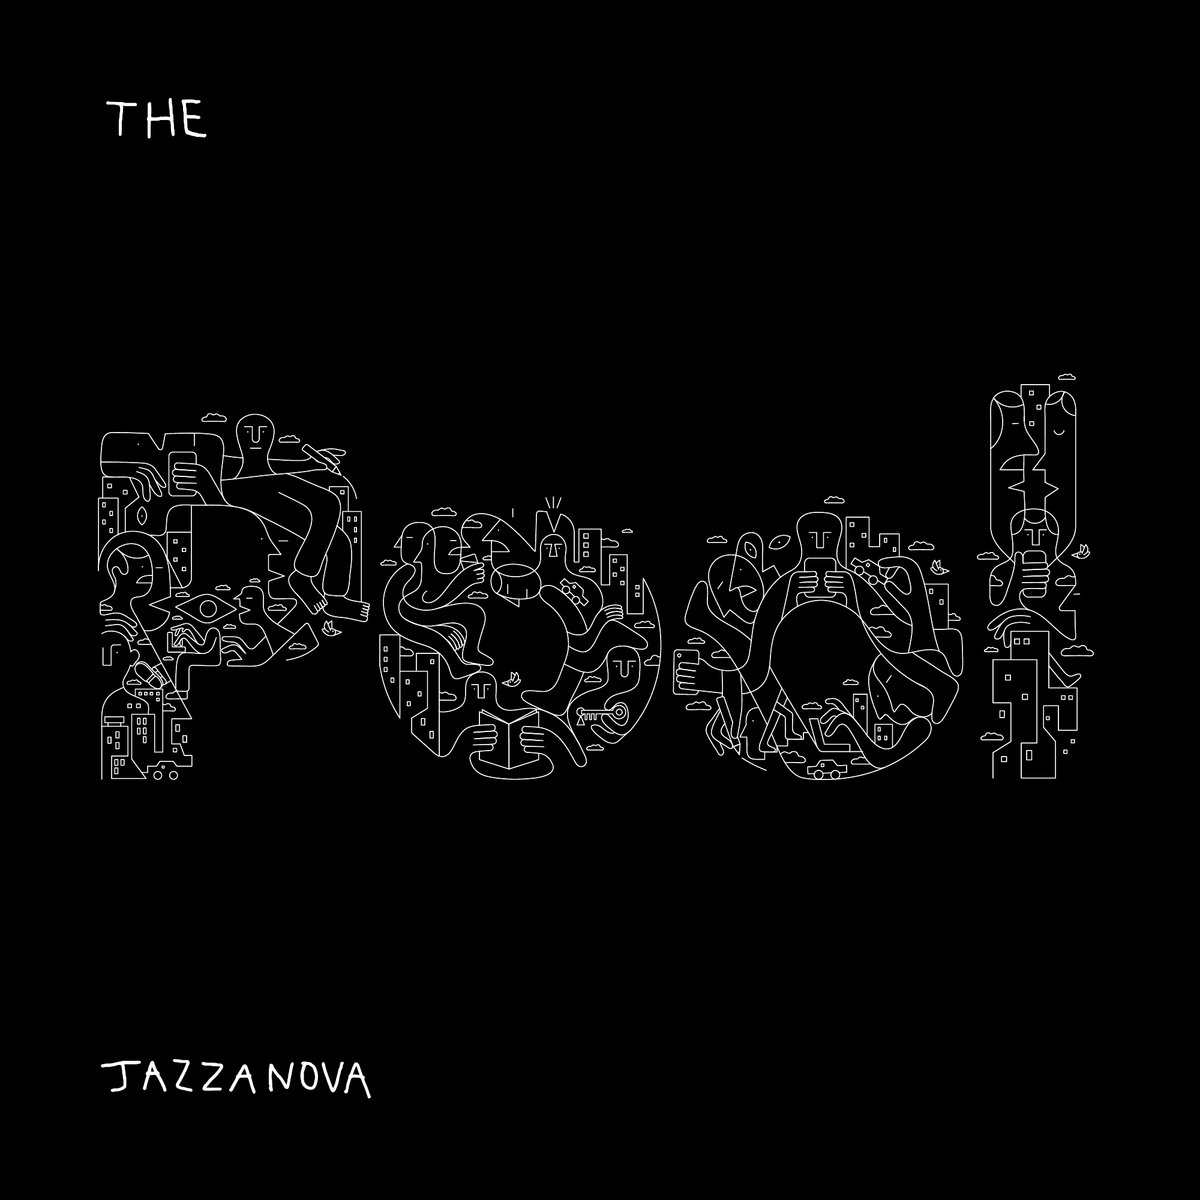 Jazzanova feat. Ben Westbeech - Summer Keeps On Passing Me By